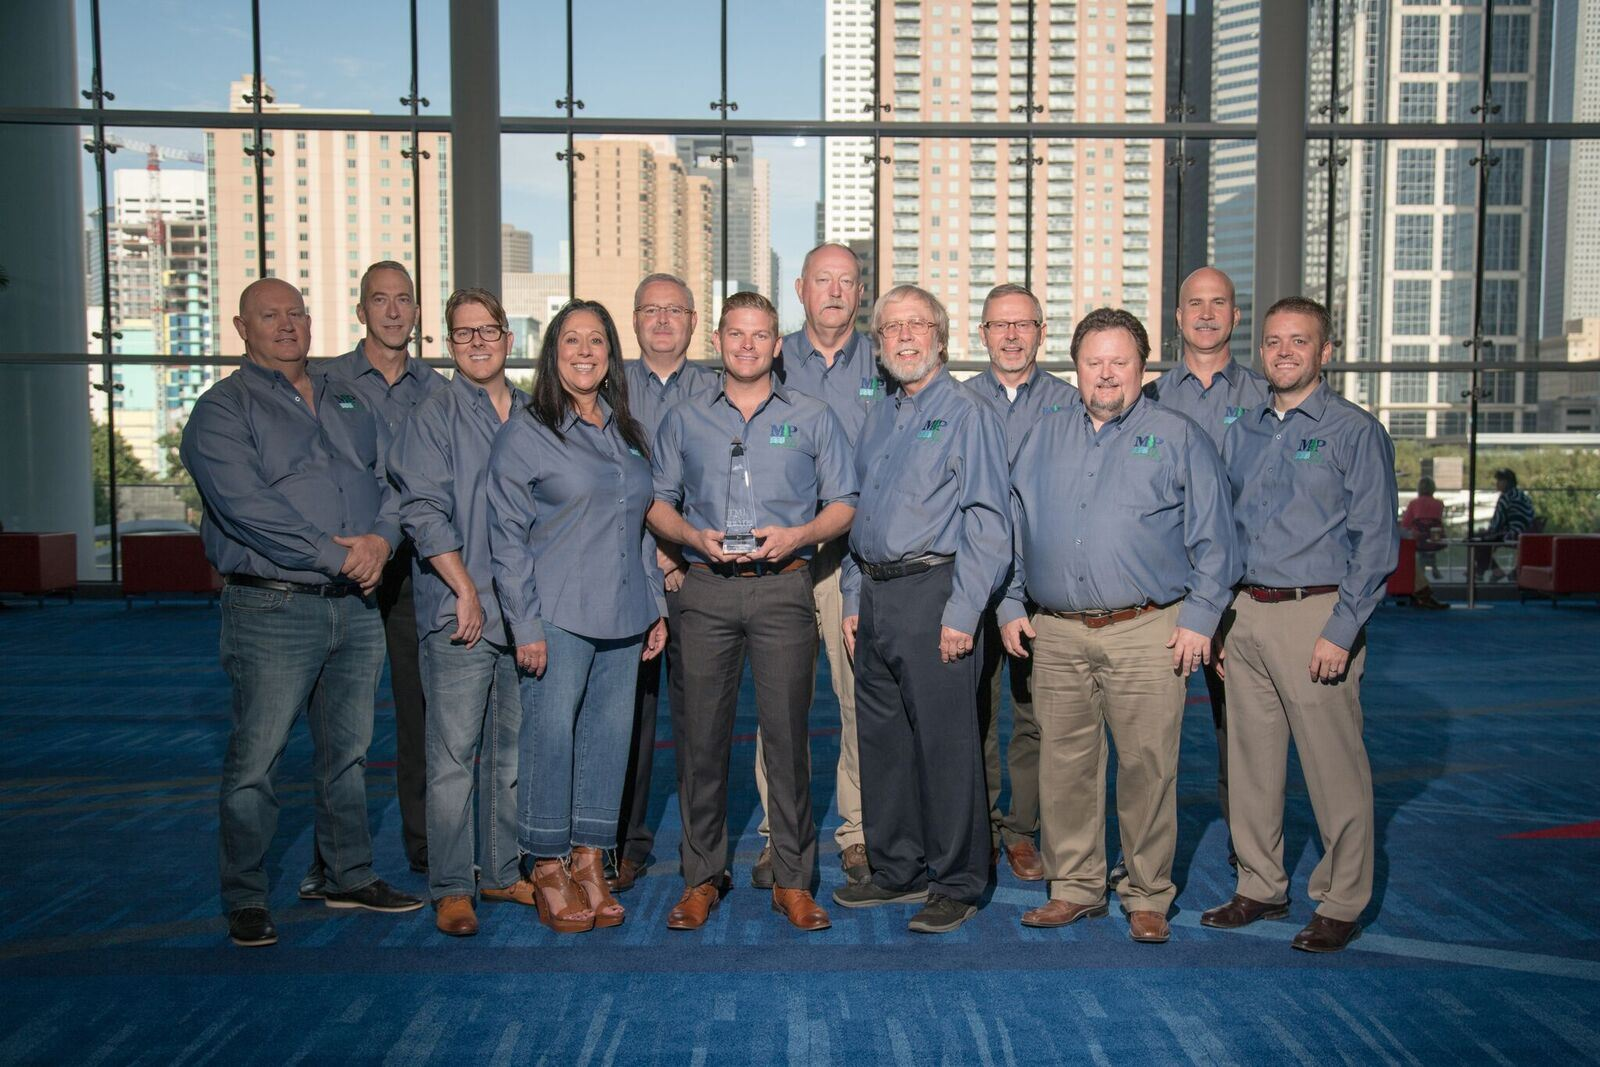 12 Mount Pleasant employees in blue shirts with one holding award at event